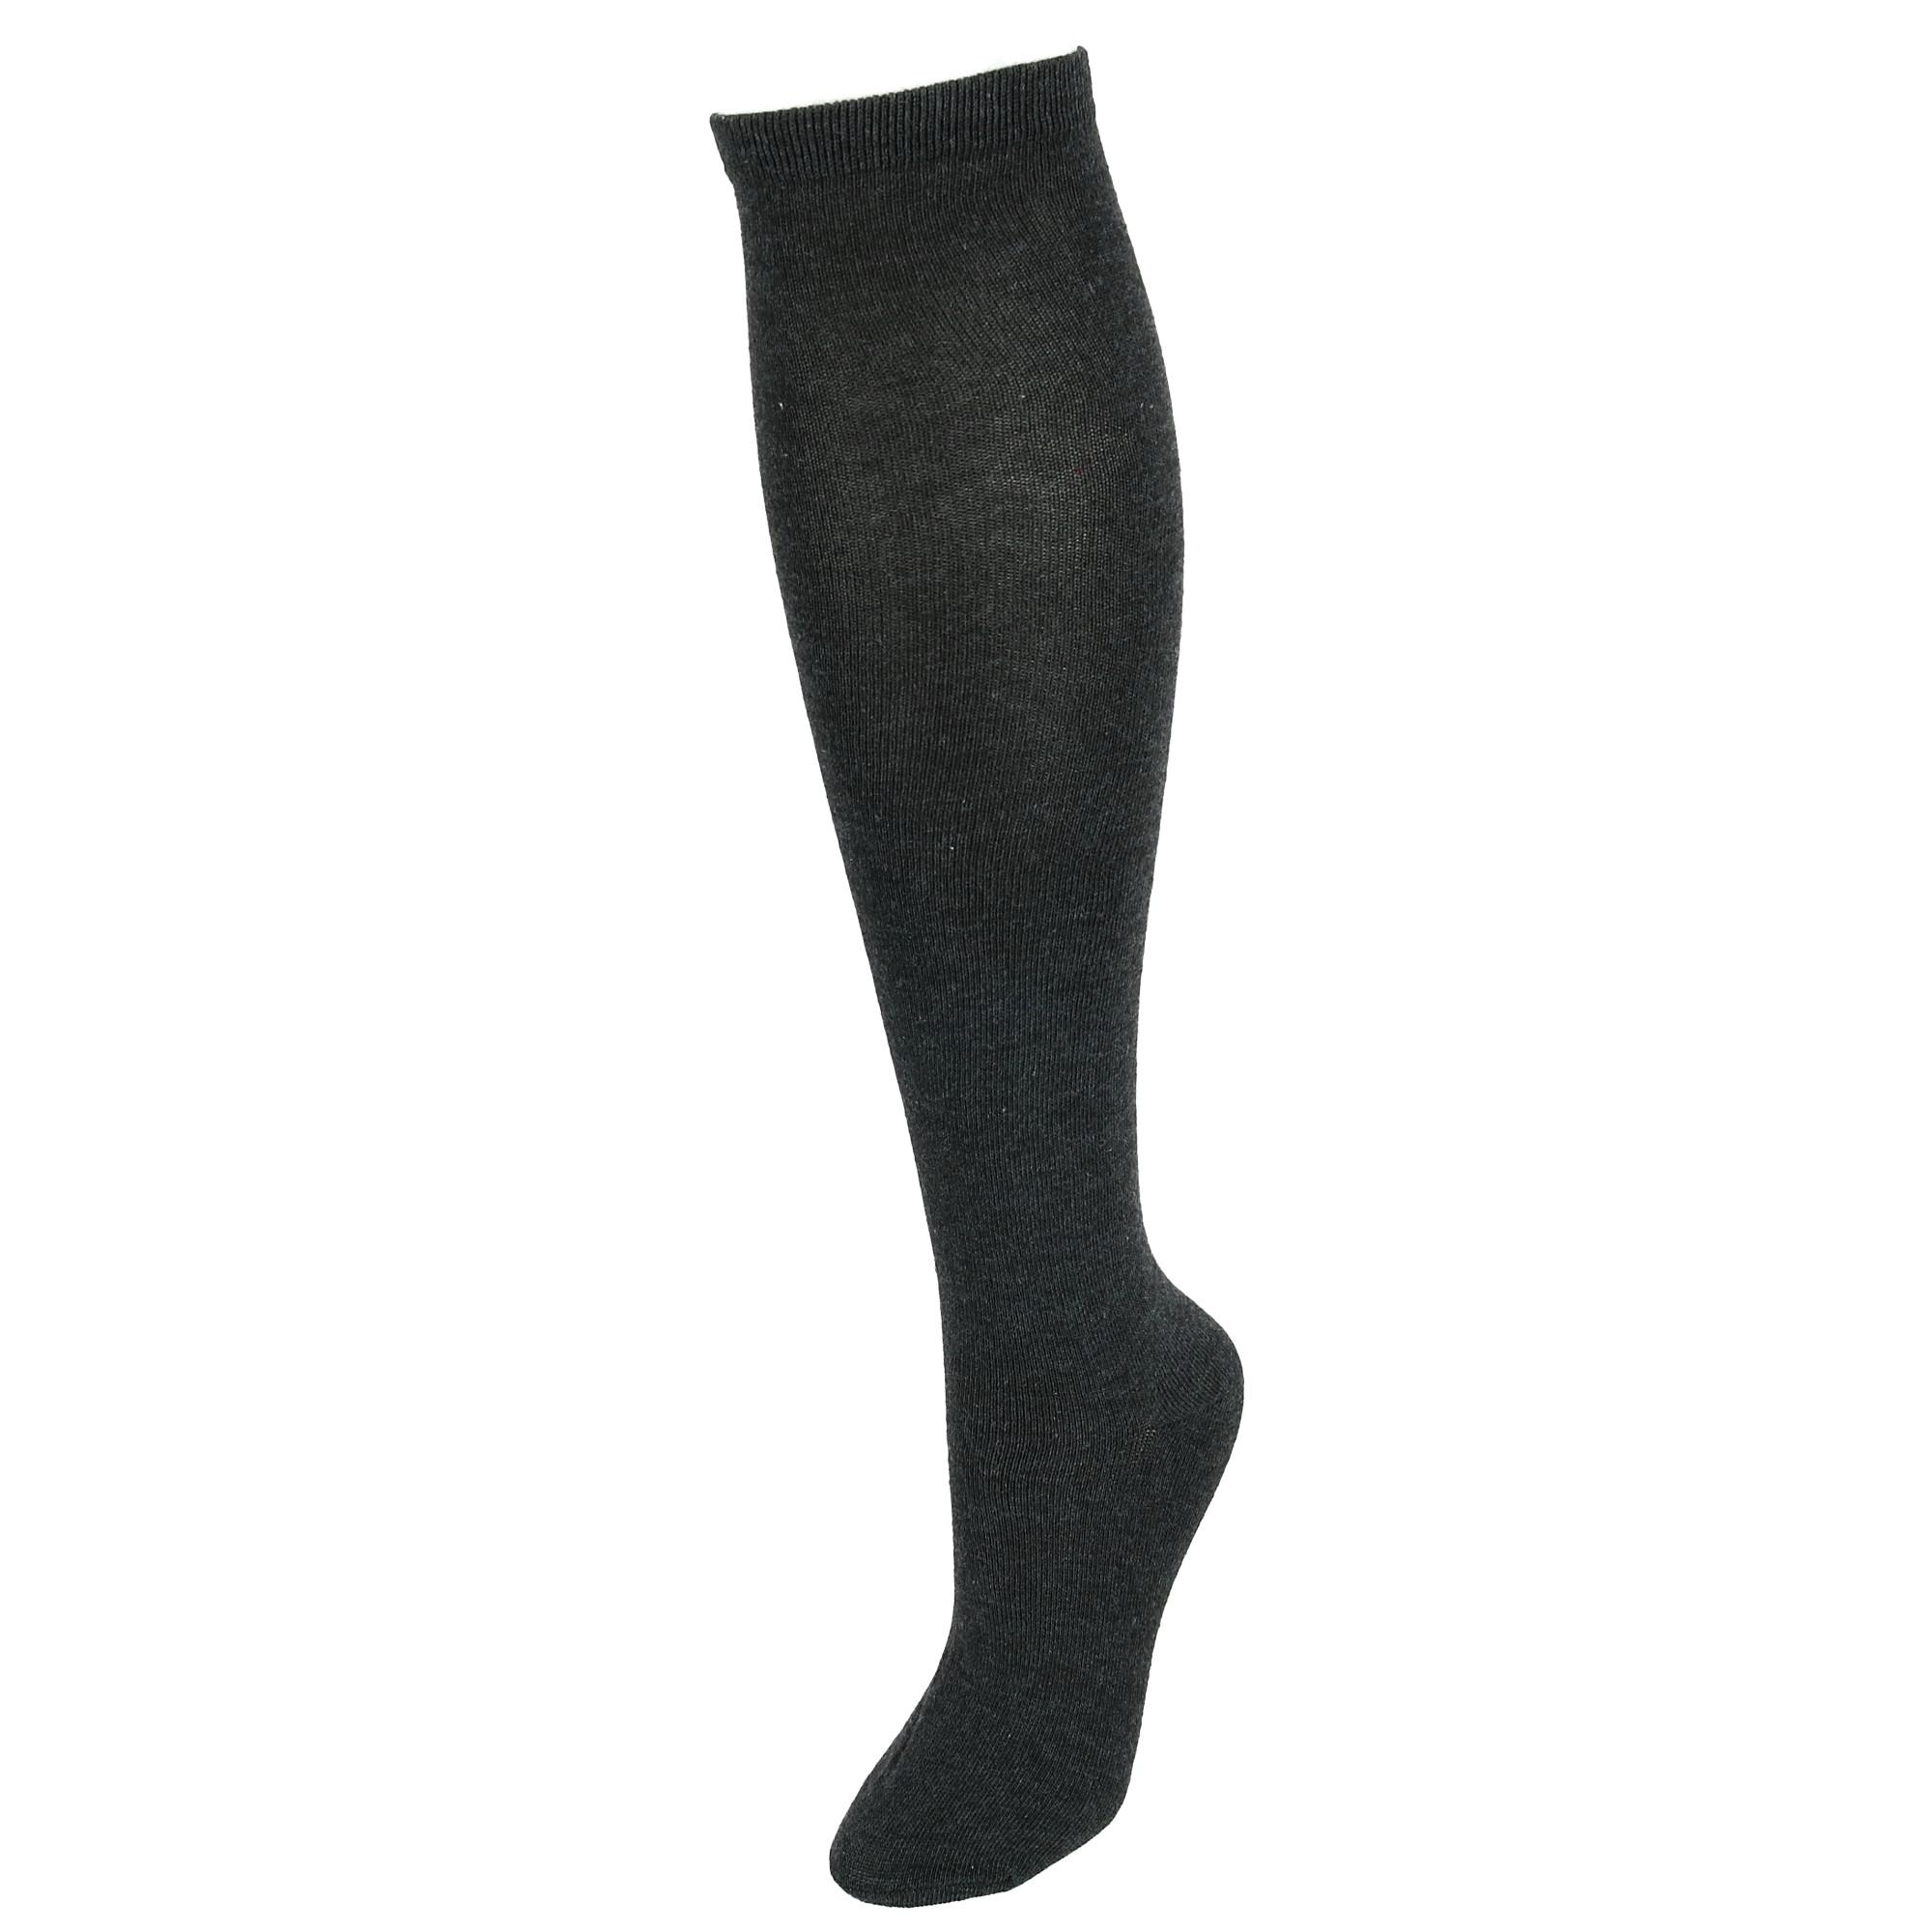 7d65b52e9c3 Details about New Densley   Co Women s Solid Knee High Socks (2 Pair Pack)